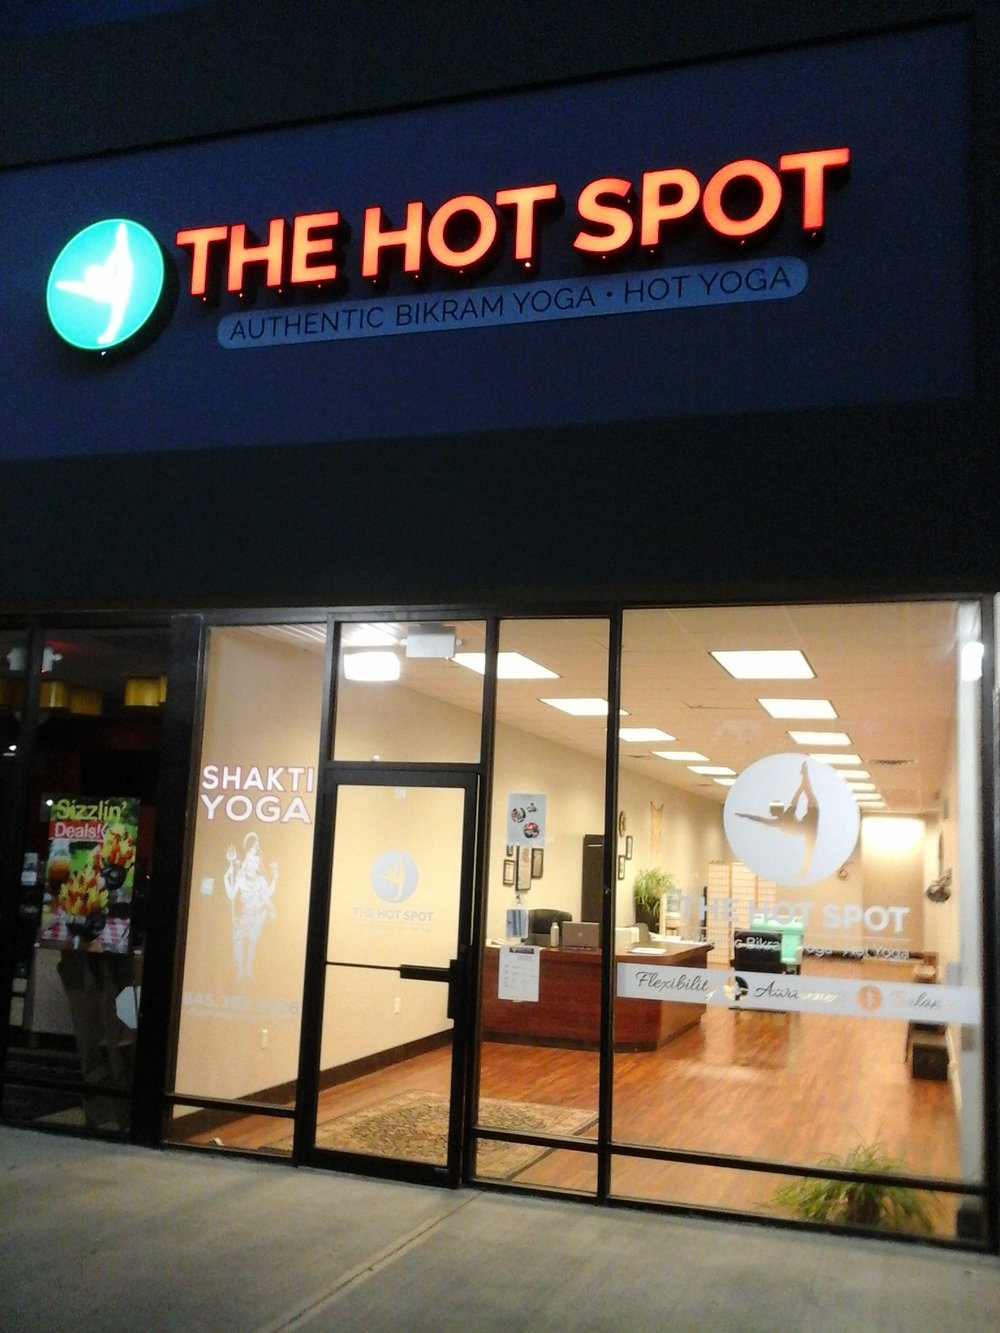 the hot spot sign night.jpg